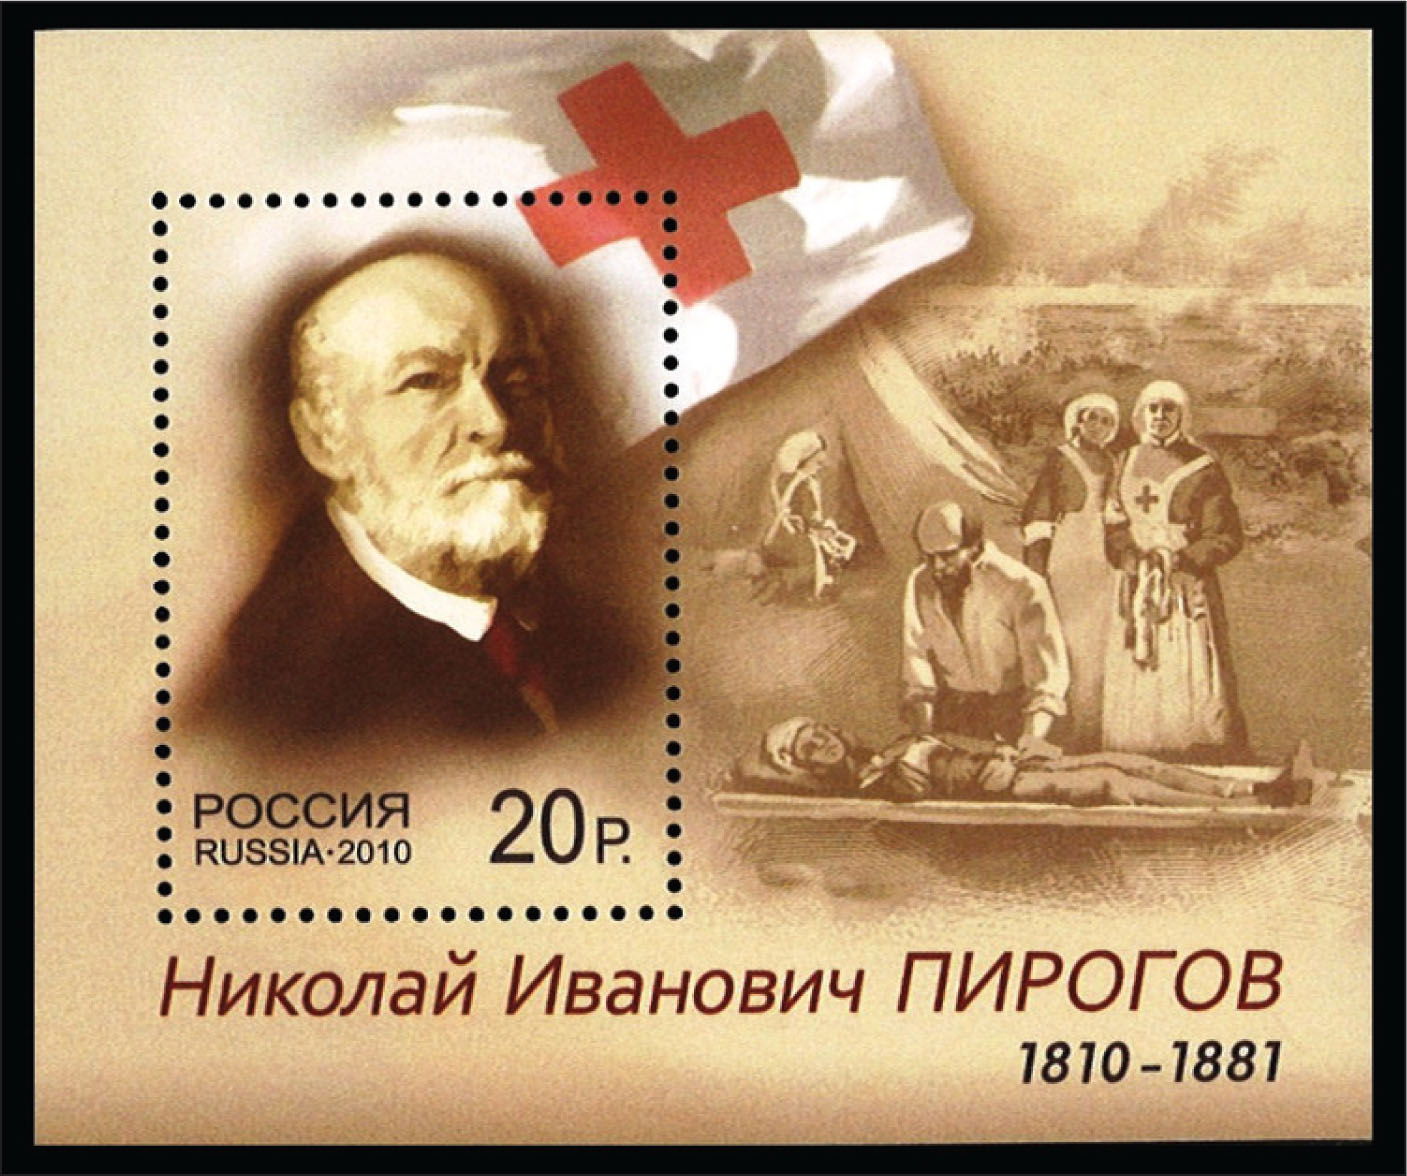 Russian sheet issued in 2010 honors Nikolai Ivanovich Pirogov (1810–1881), considered the greatest Russian surgeon.